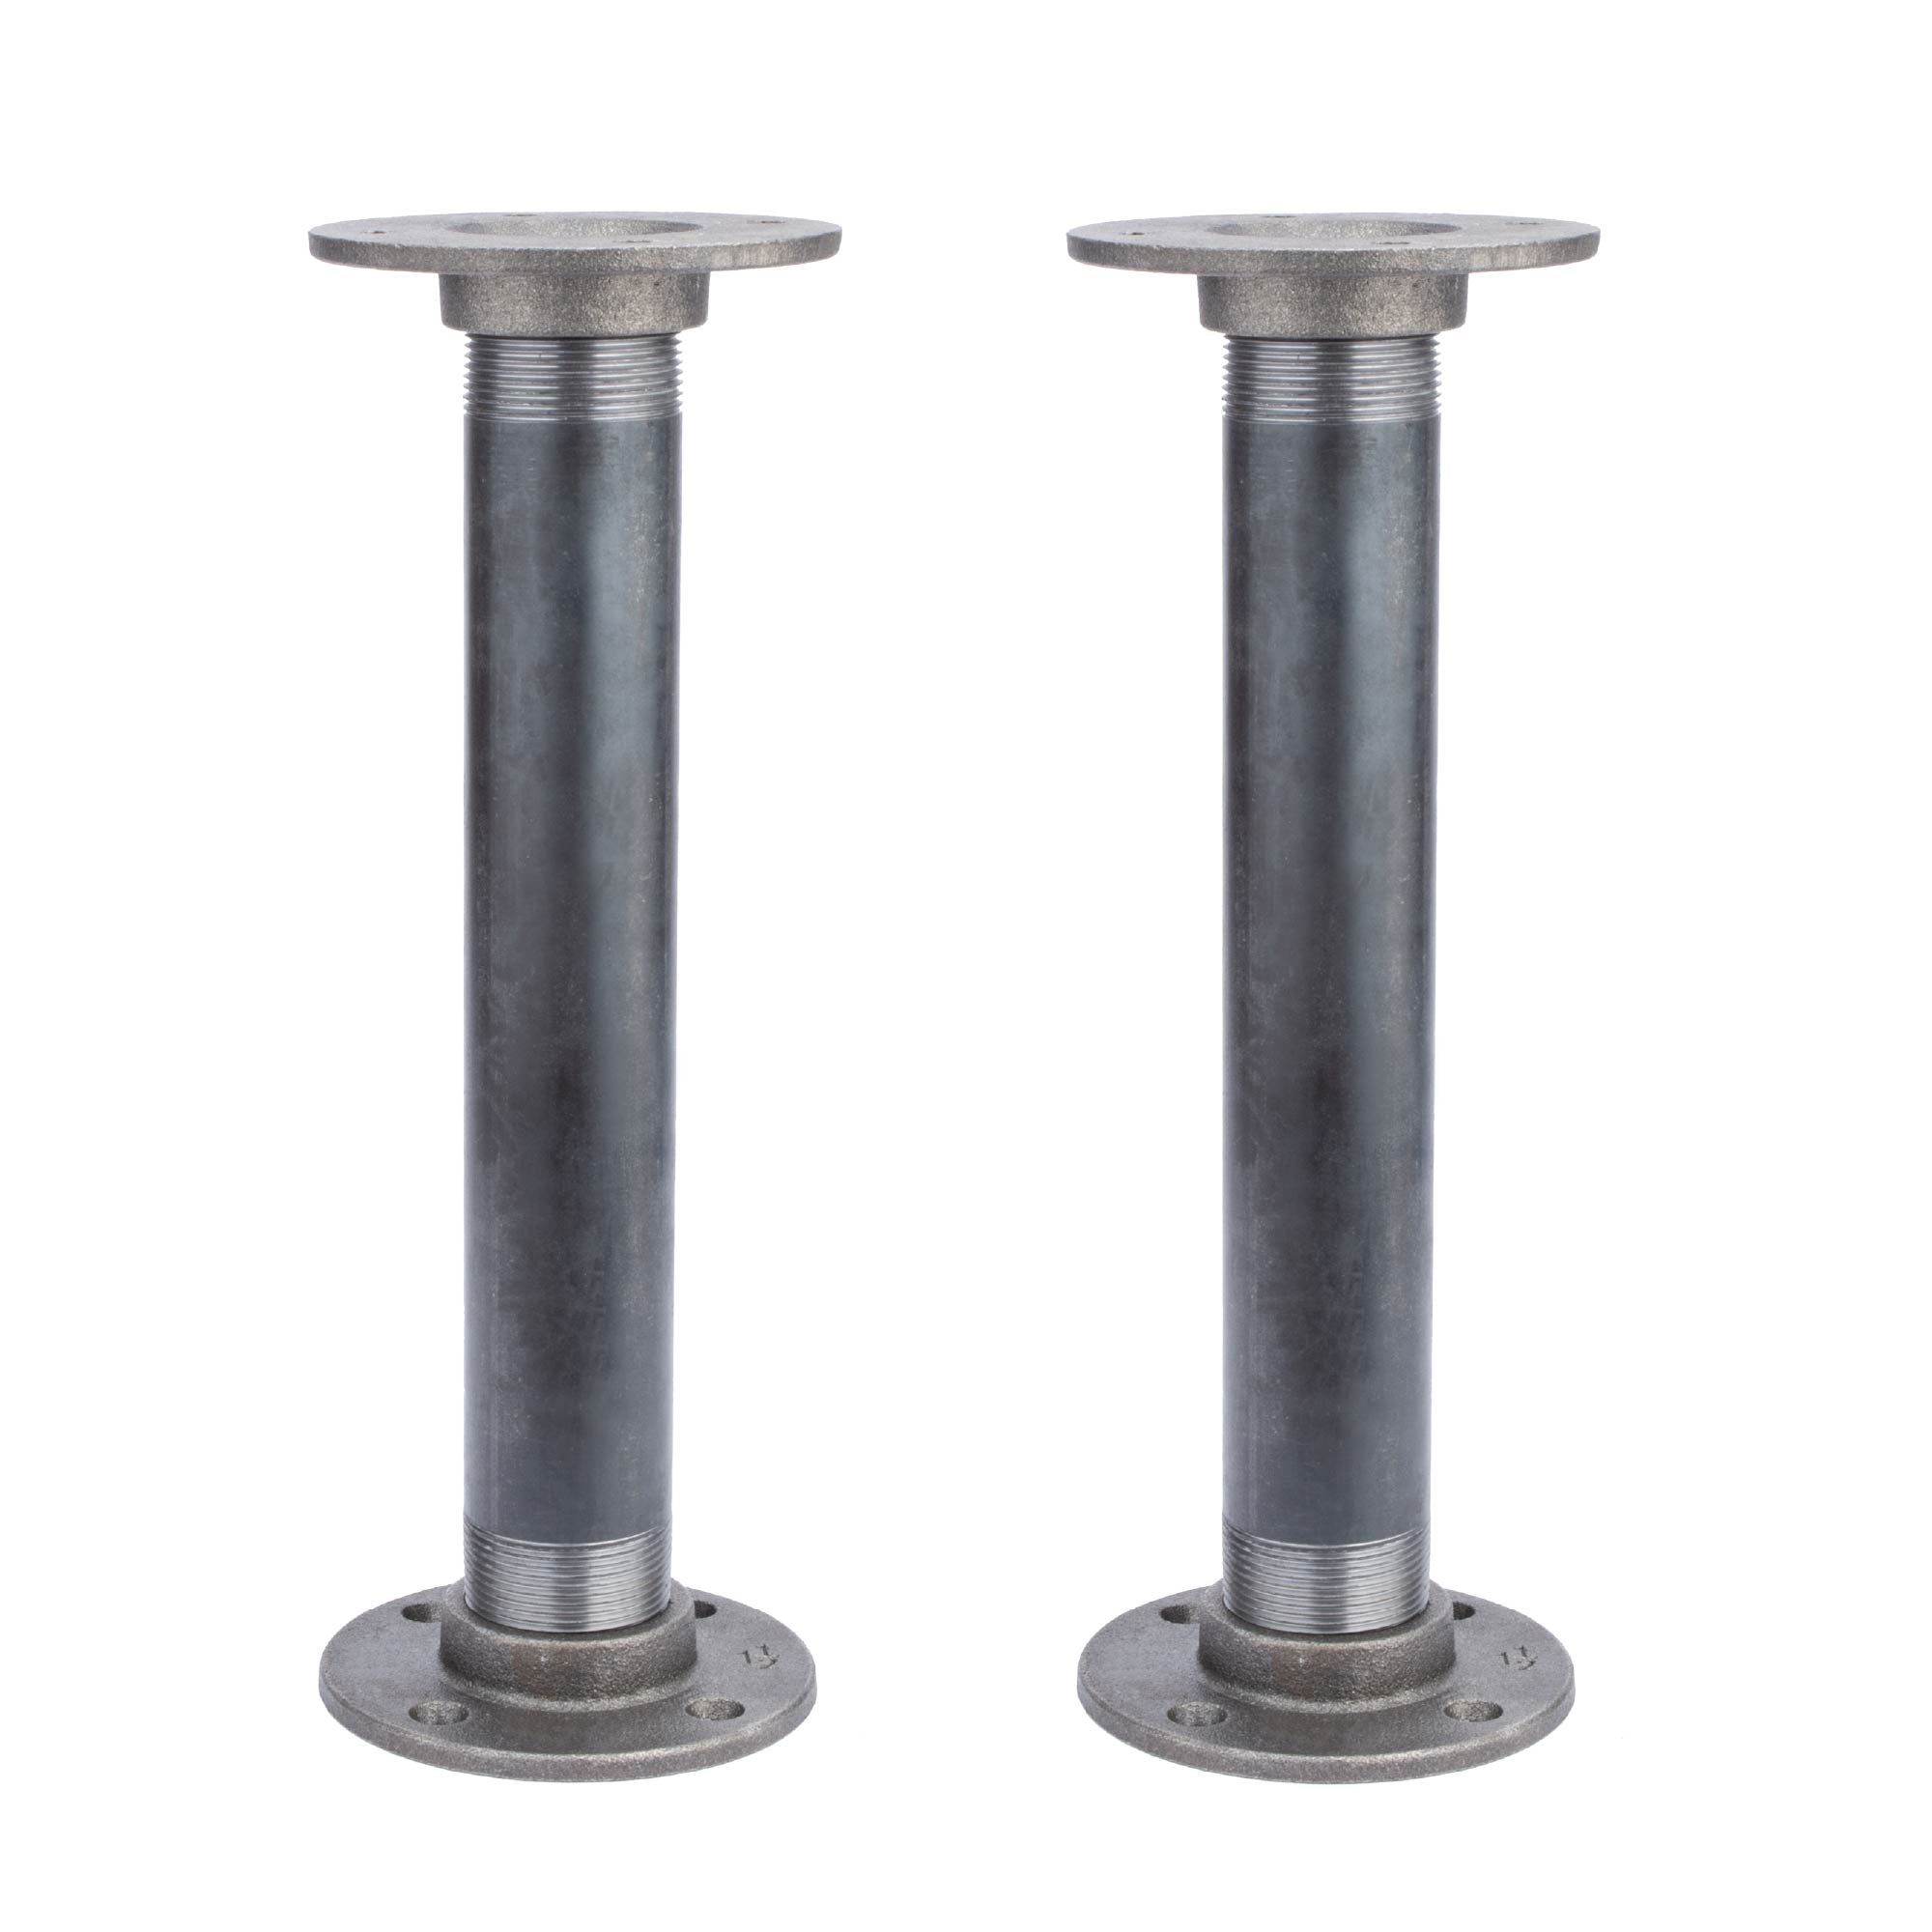 1 1/2 in. x 12 in. Flange legs - 2 Pack